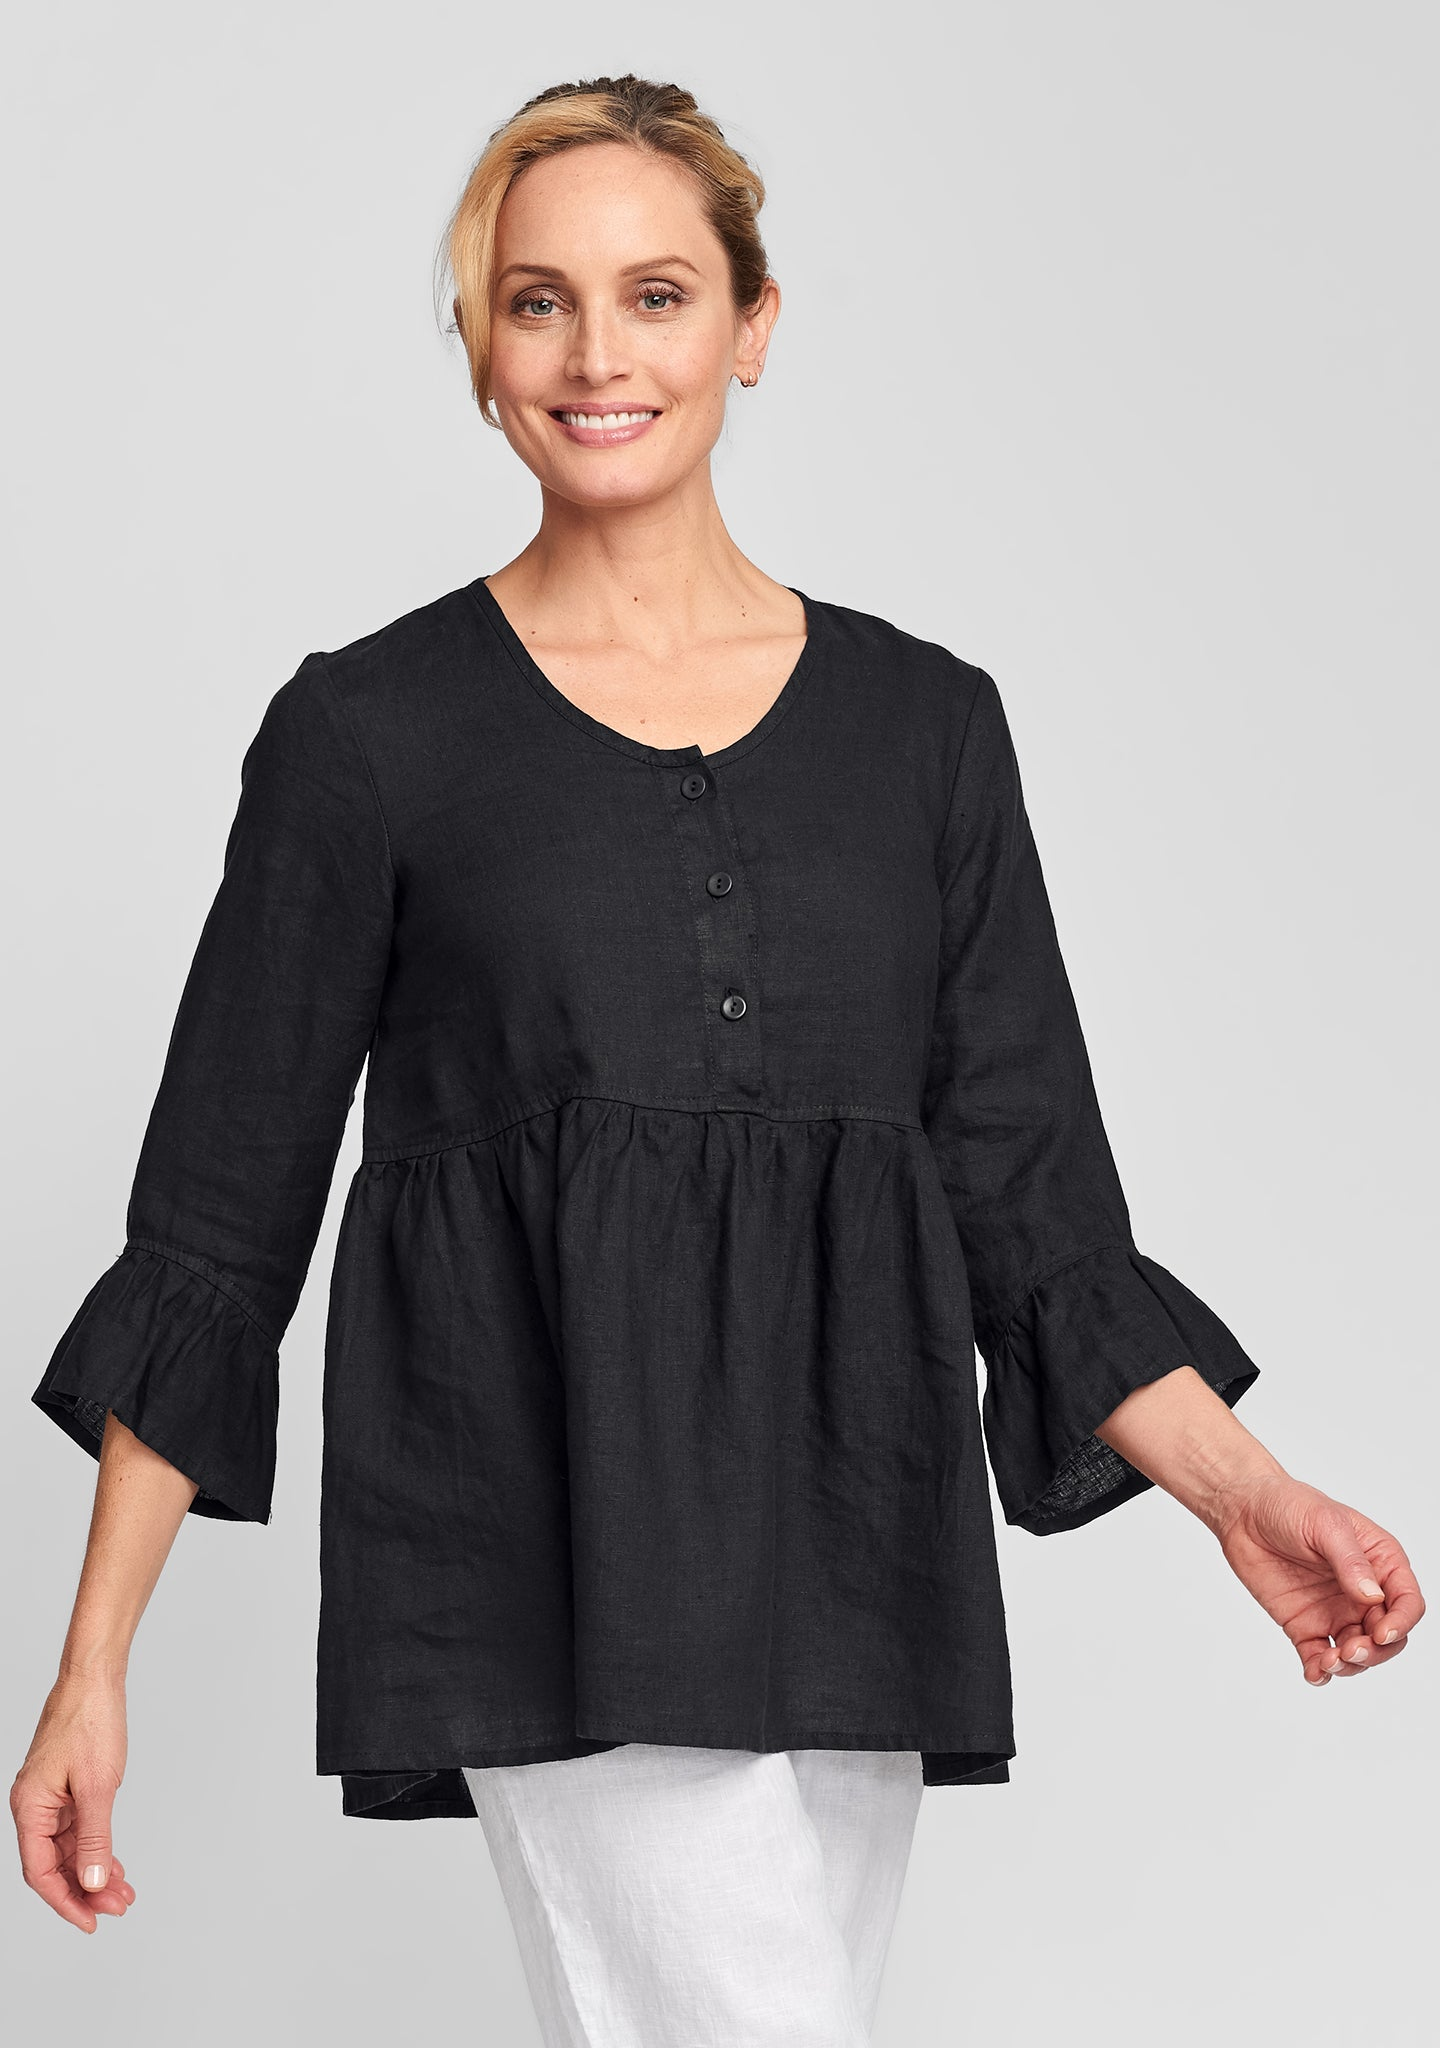 provence blouse linen shirt black